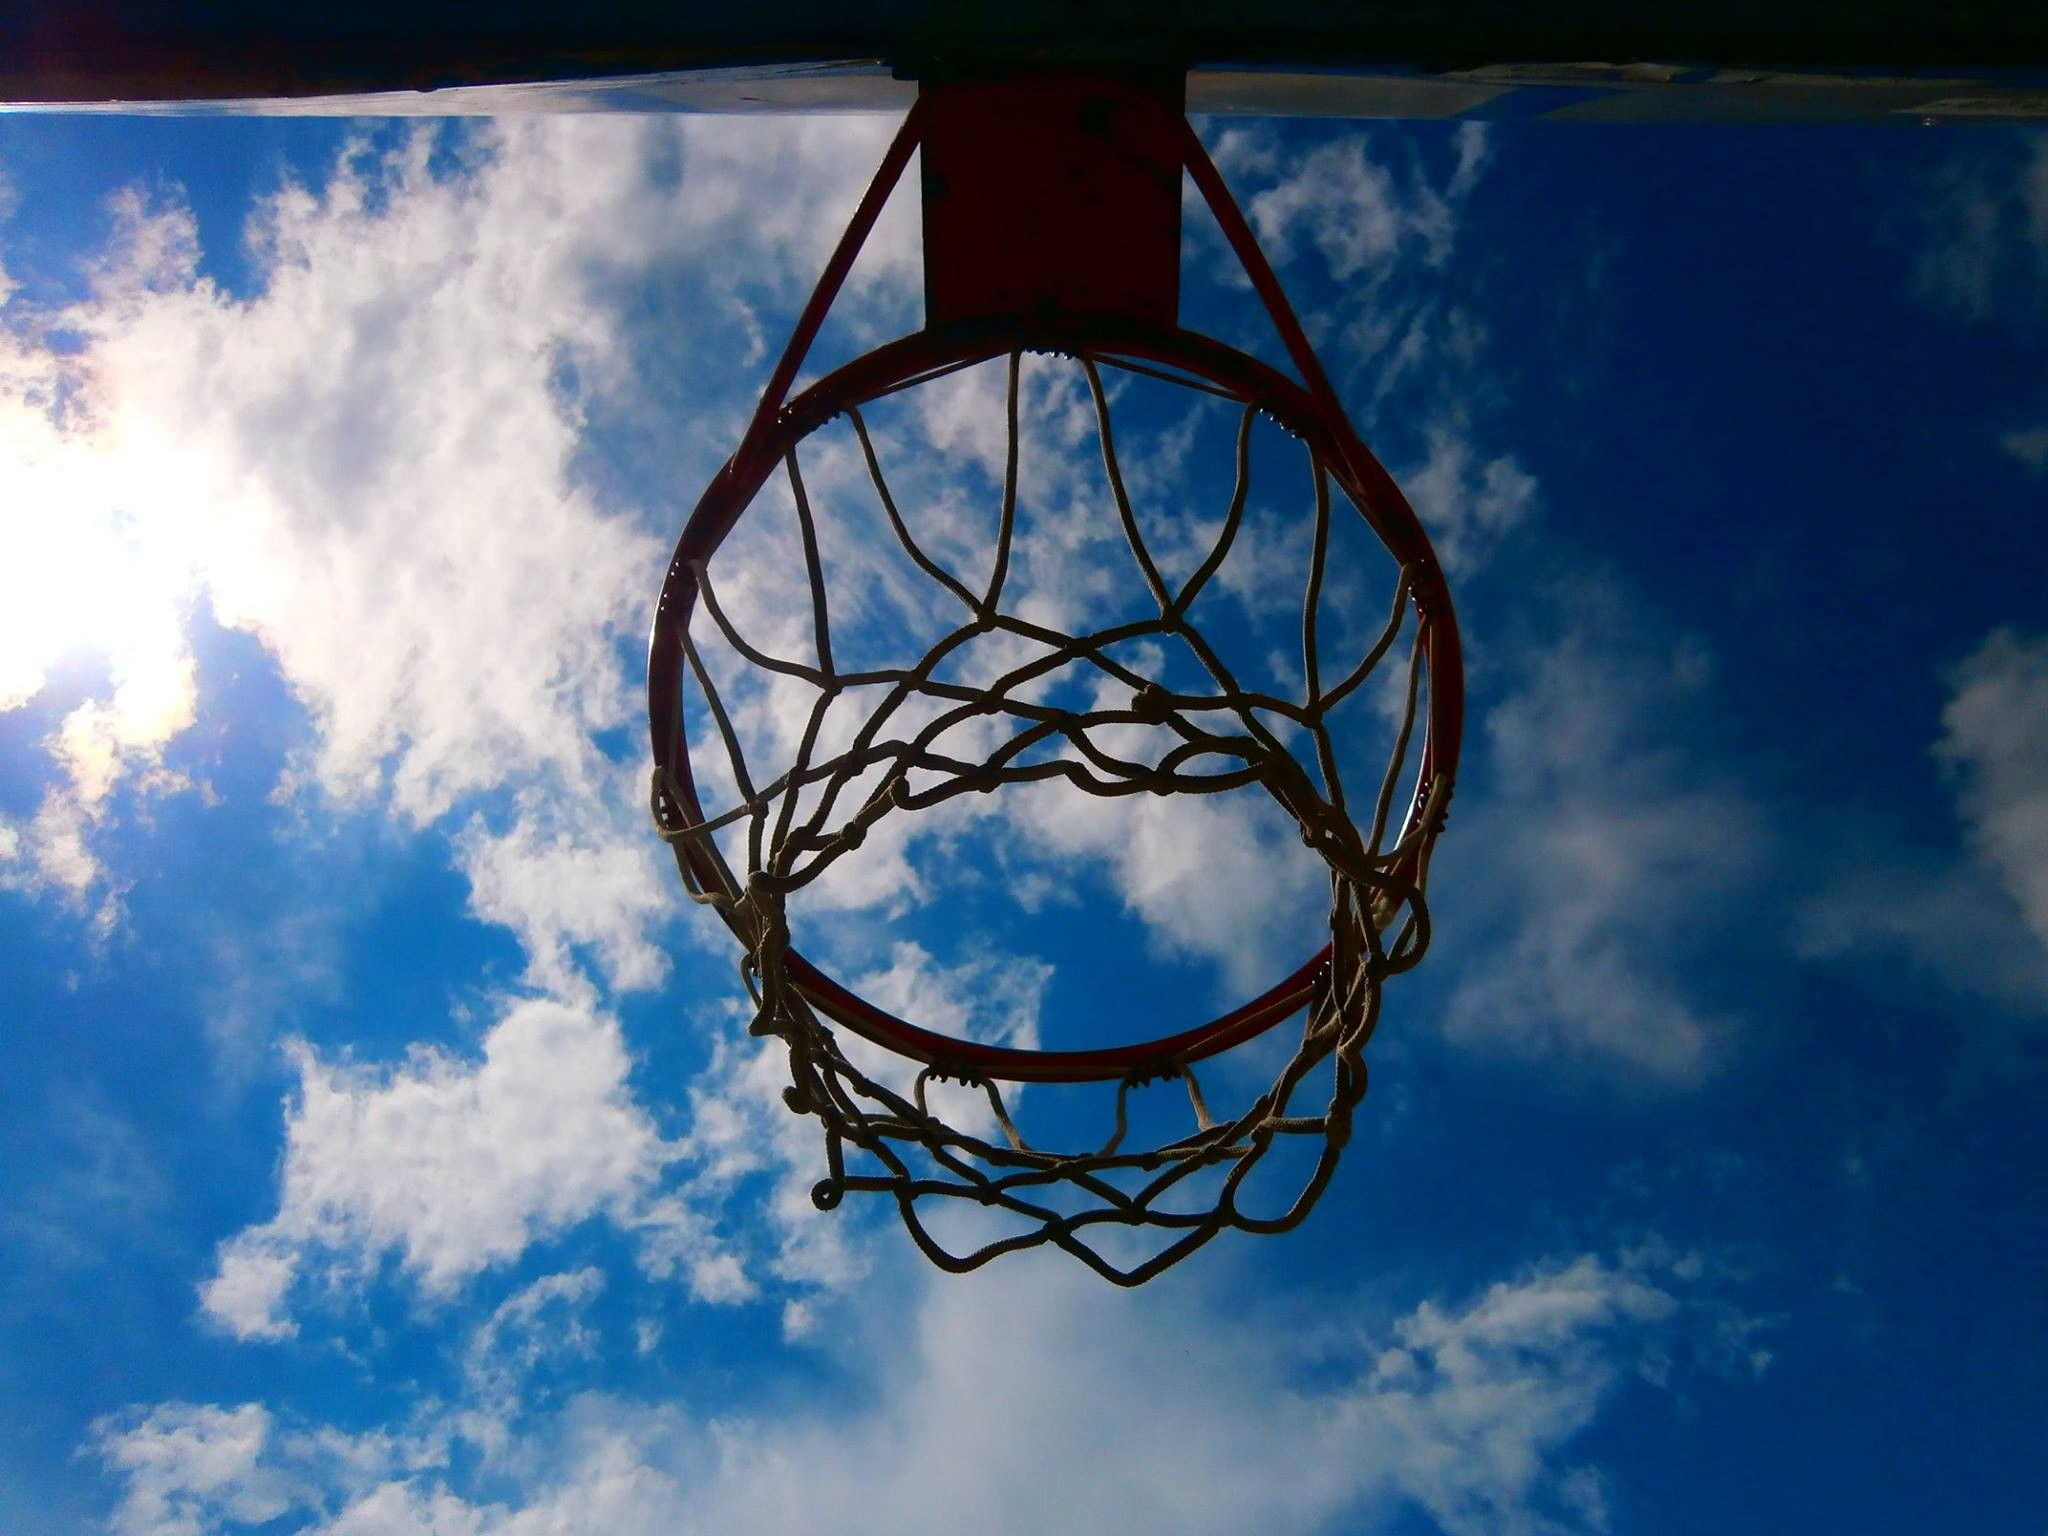 Res: 2048x1536, Basketball Wallpaper iPhone Luxury Sports Basketball Wallpaper Basketball  Pinterest Of Basketball Wallpaper iPhone Luxury Sports Basketball